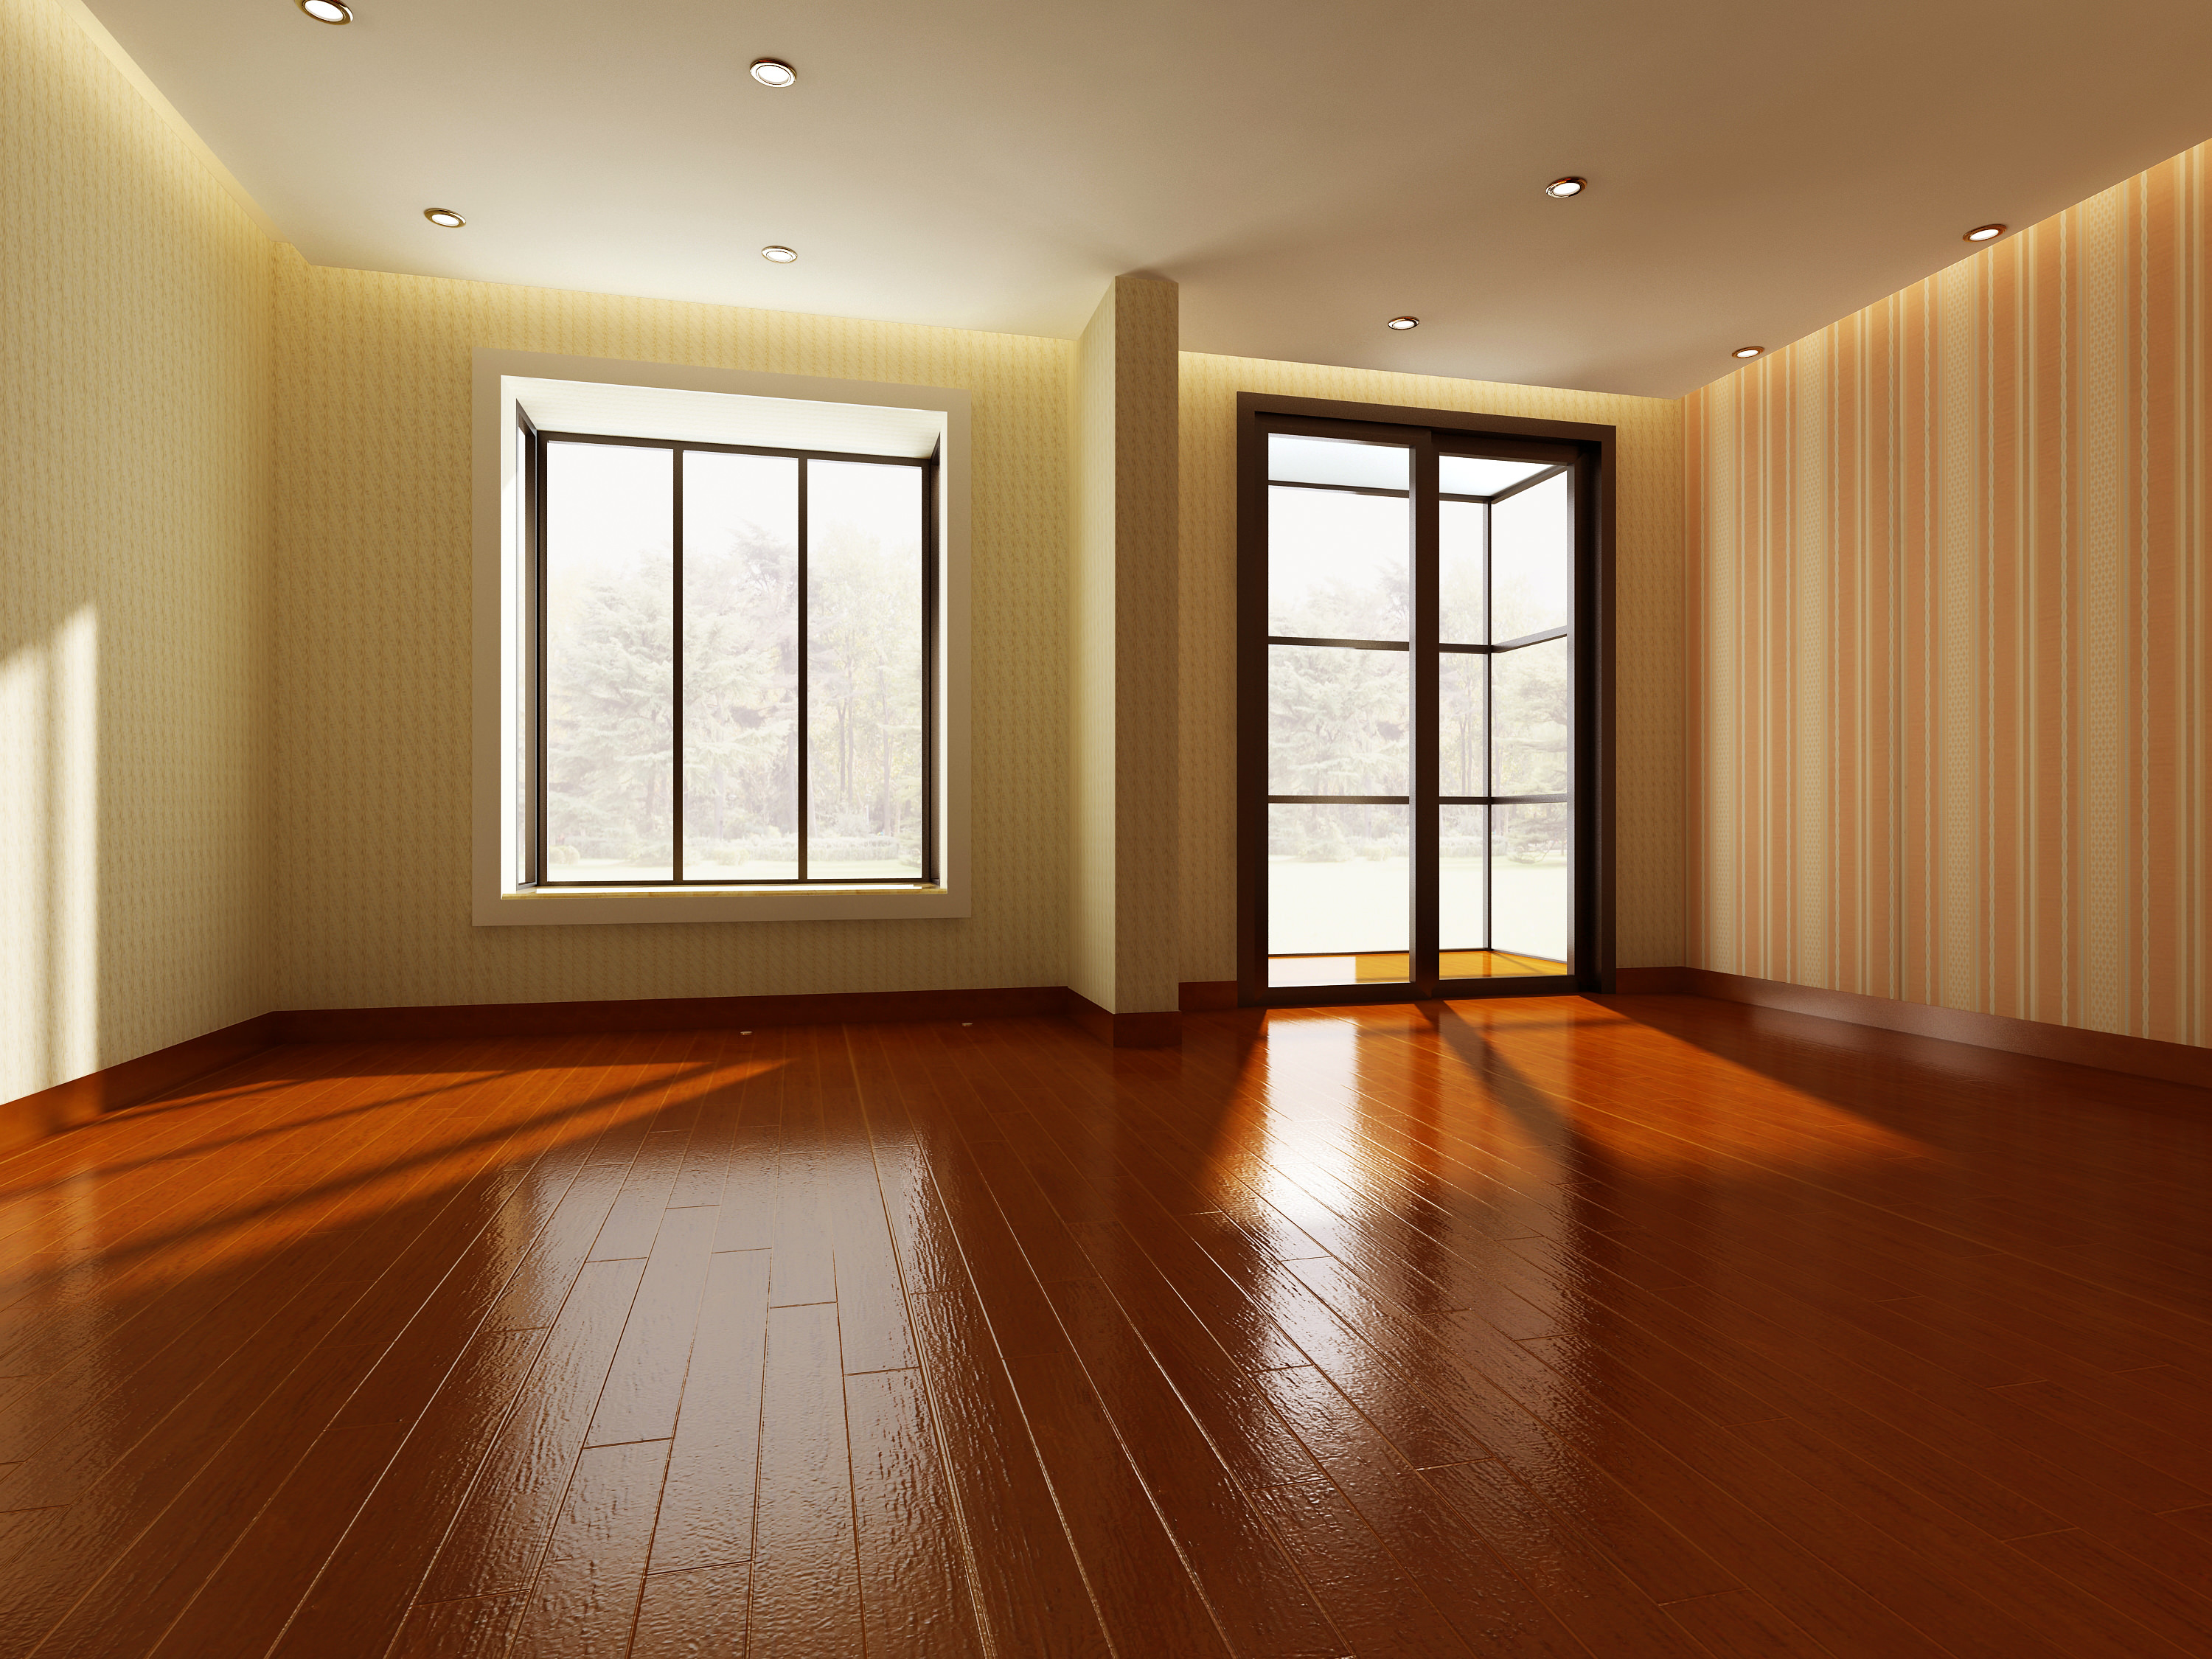 Empty room 3d model max for Room design hd image